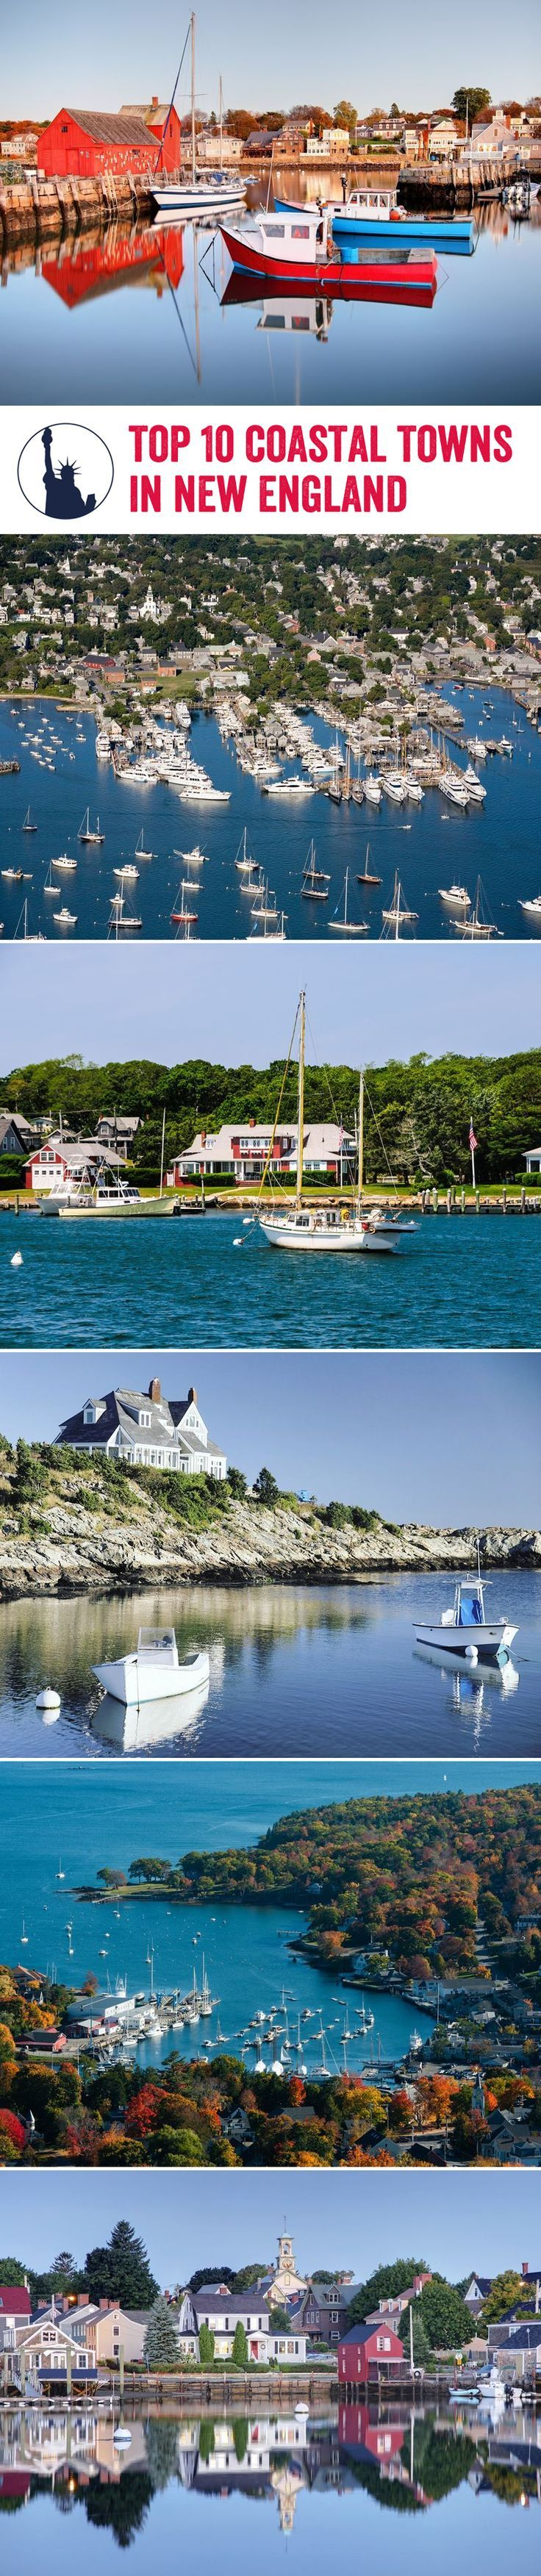 USA Travel Inspiration - New England's coastal towns truly evoke a wonderful charm. Here's our top 10 to visit